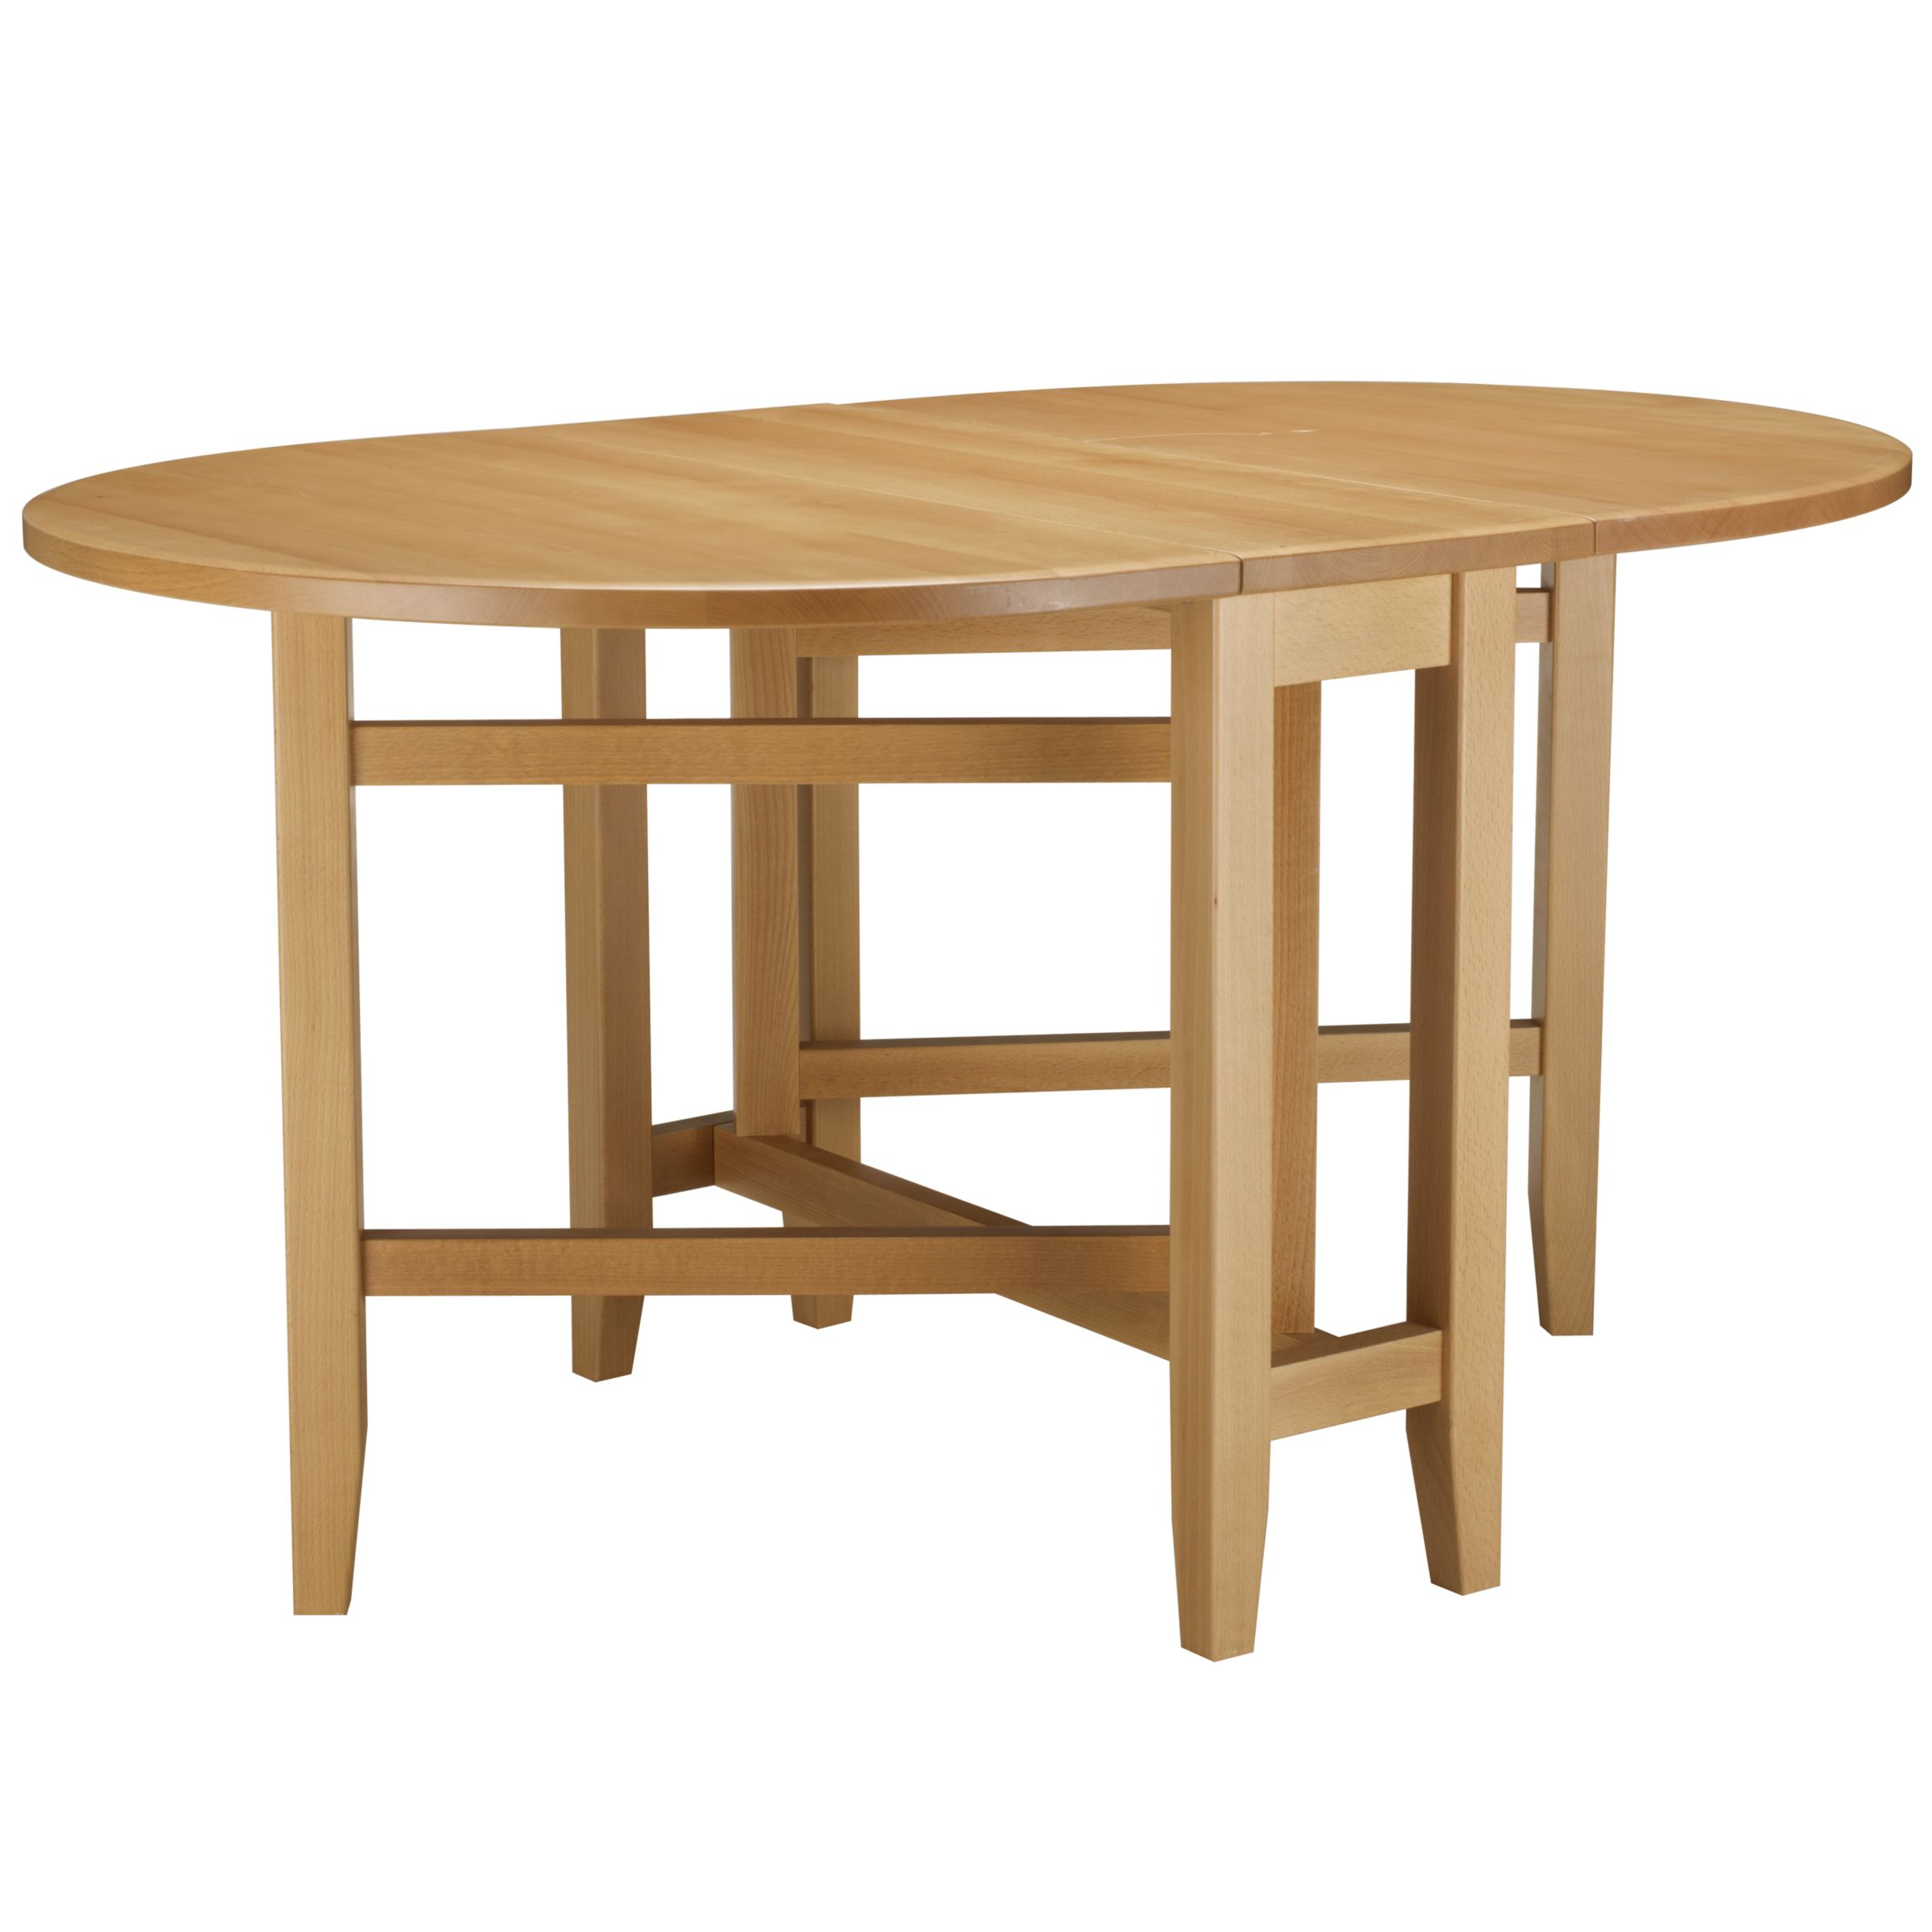 John Lewis Piran Gateleg Dining Table Oak review  : 231064114 from www.comparestoreprices.co.uk size 2400 x 2400 jpeg 183kB